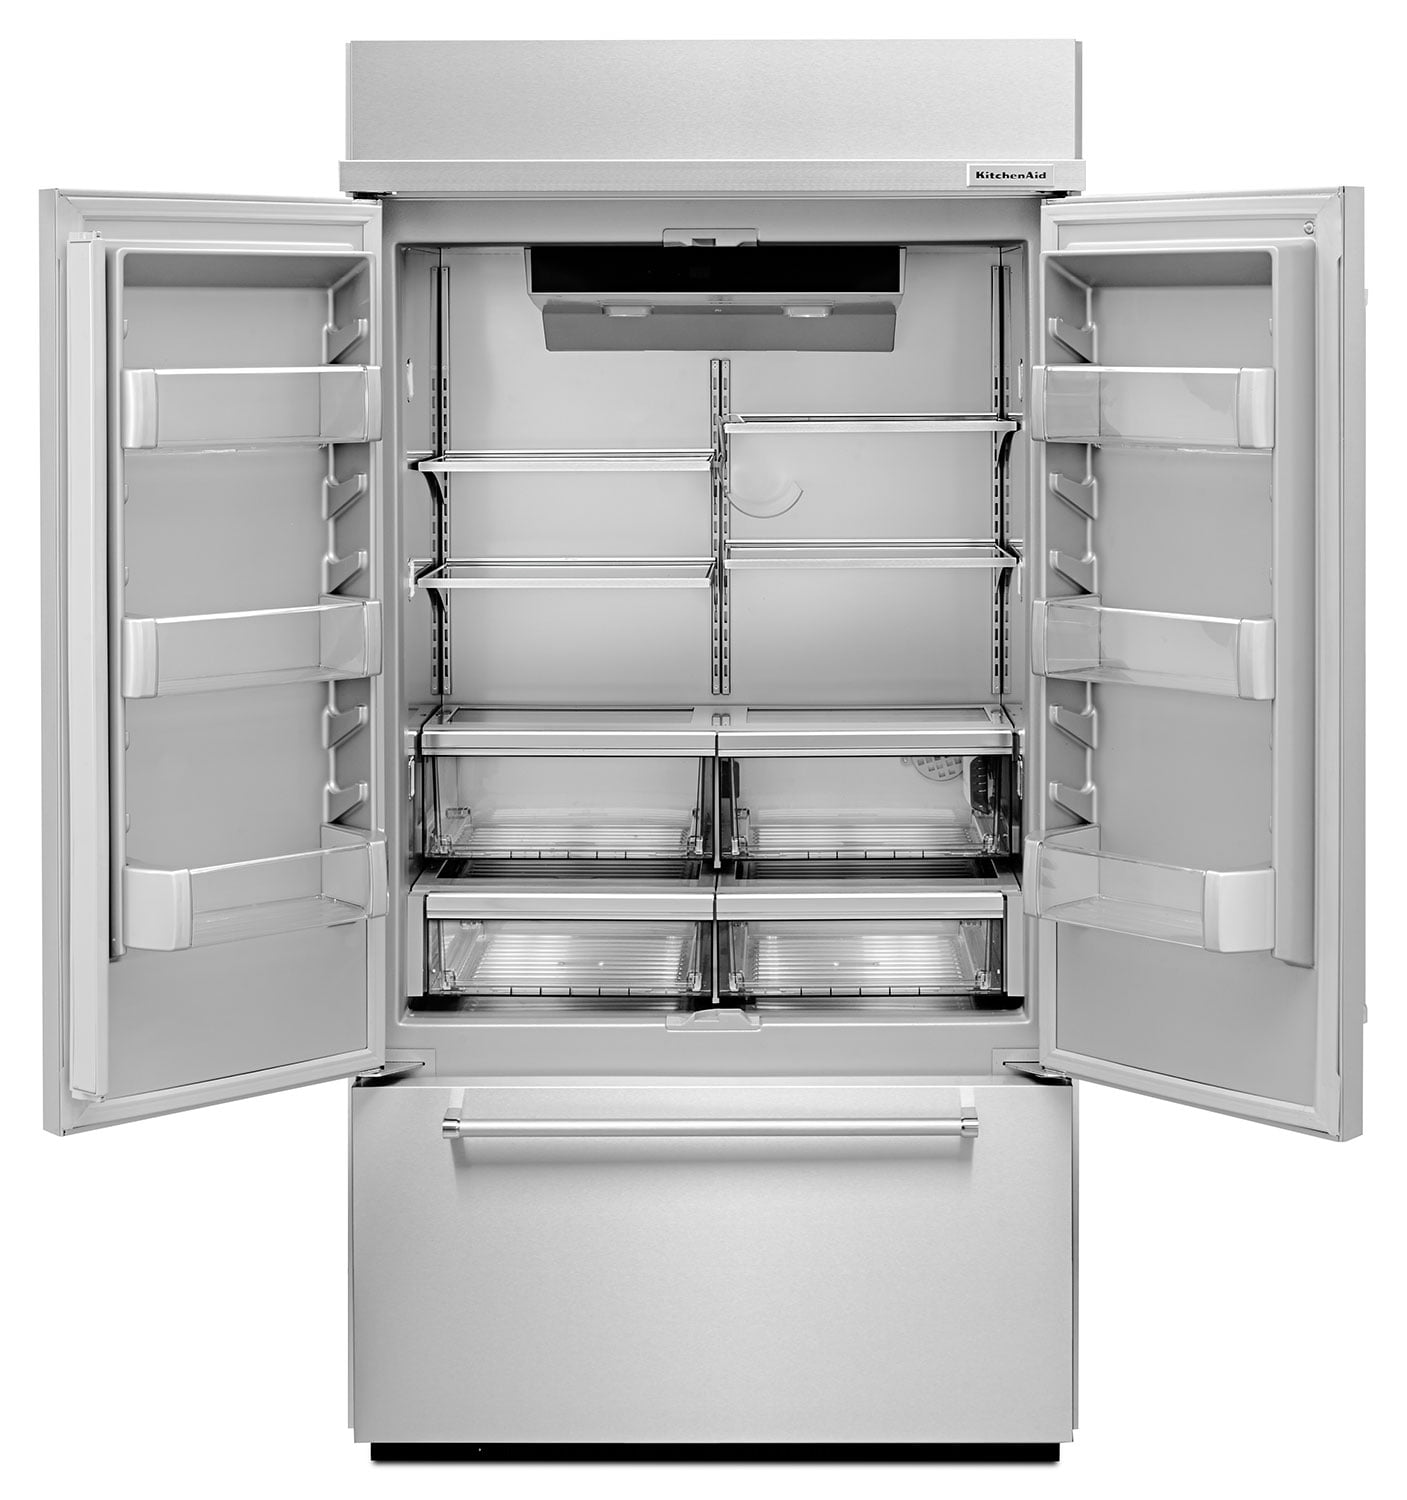 KitchenAid 24.2 Cu. Ft. Built-In French-Door Refrigerator